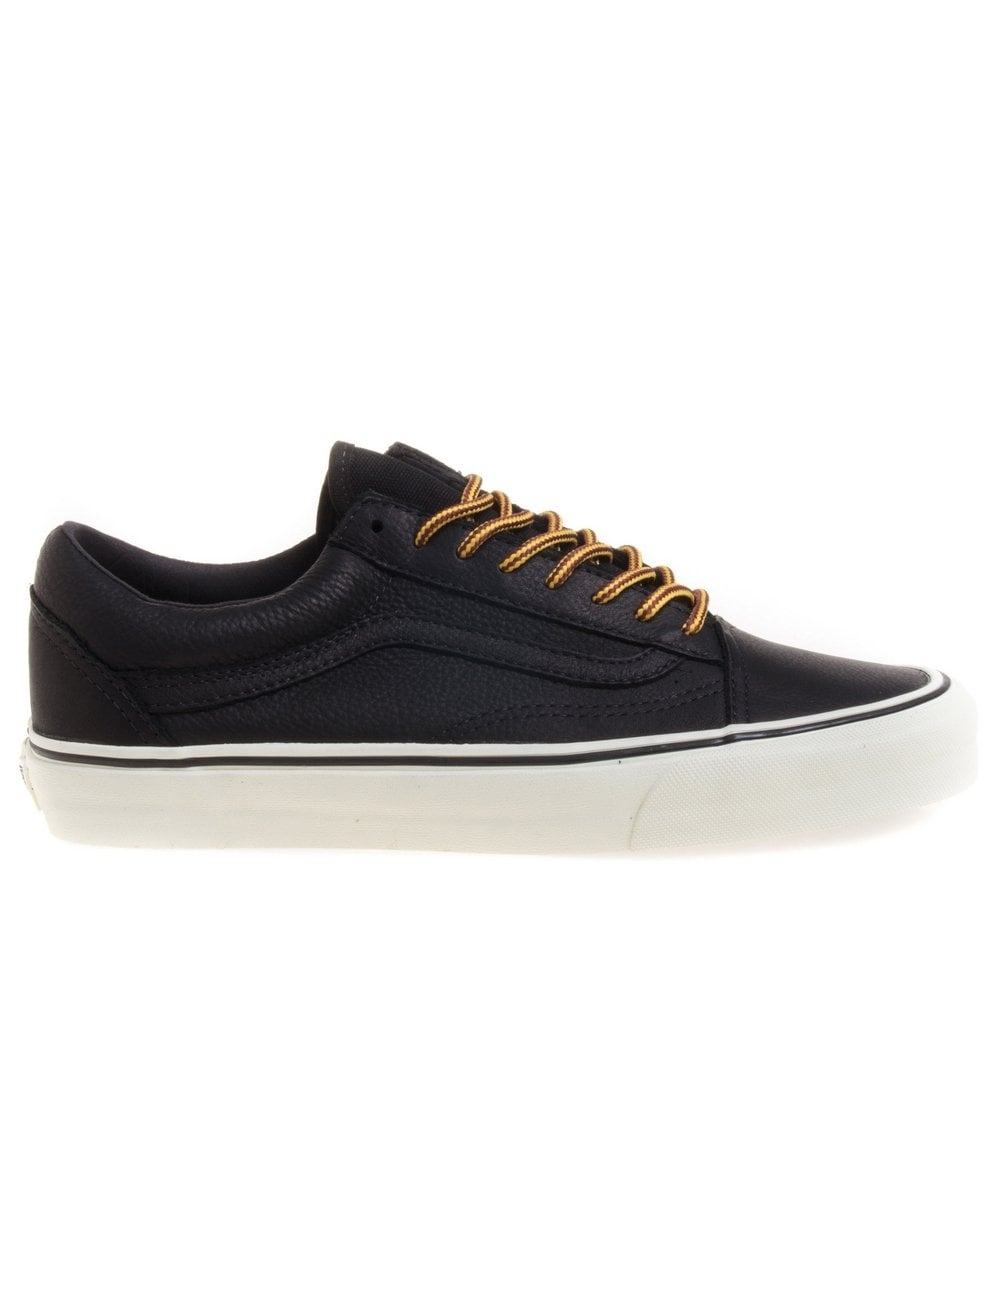 52616e30b1 Vans California Old Skool Reissue - Vanila Ice (Leather) - Footwear ...